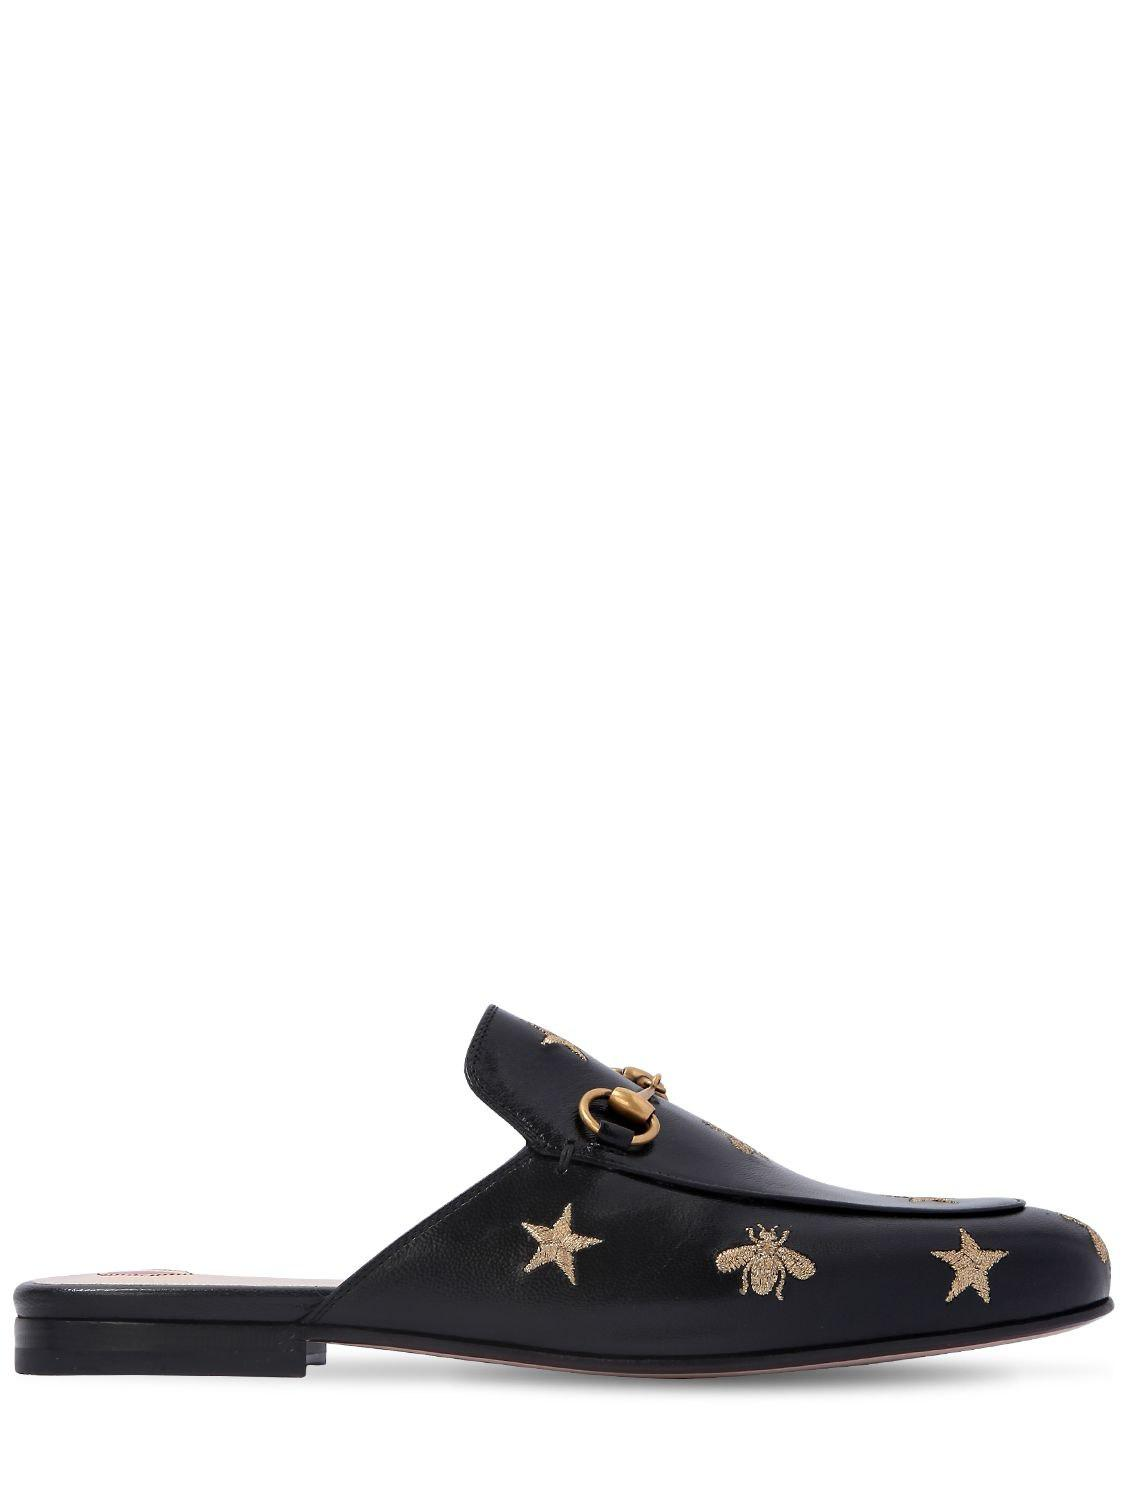 49be7b8d453 Lyst - Gucci Princetown Embroidered Leather Slipper in Black